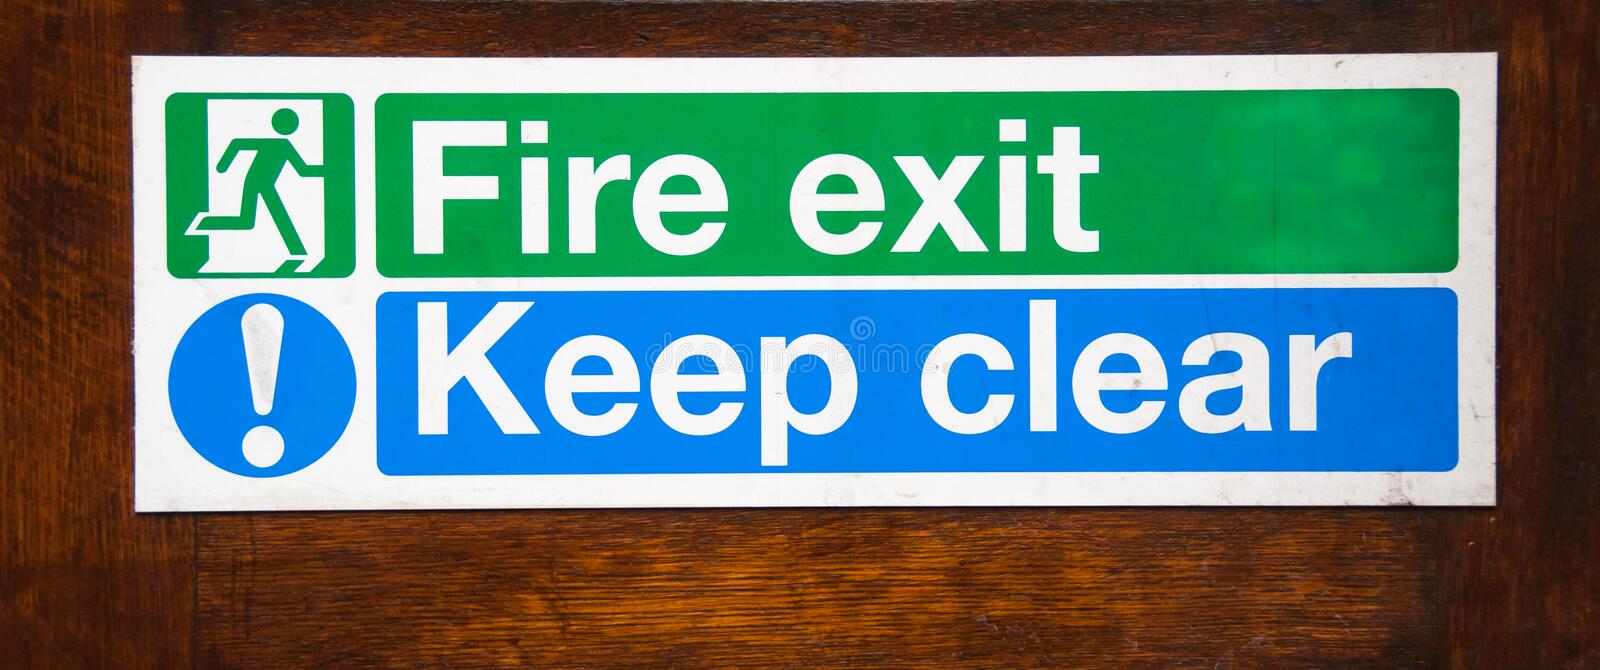 Download Fire Exit Keep Clear Royalty Free Stock Photos - Image: 26440018